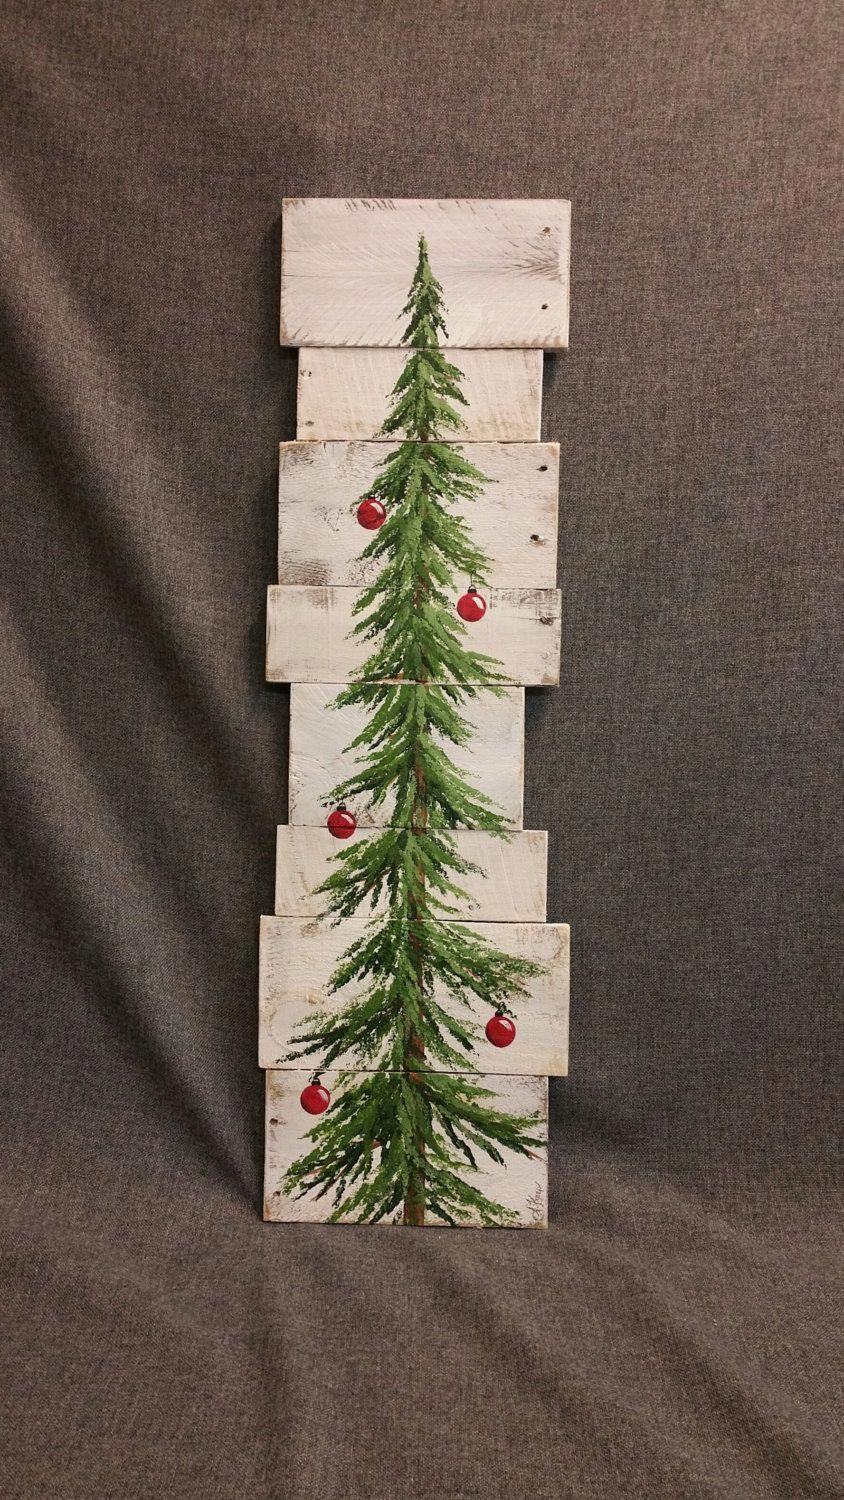 Wedding decorations wood november 2018 White washed Red bulbs Christmas Pine tree Reclaimed Wood Pallet